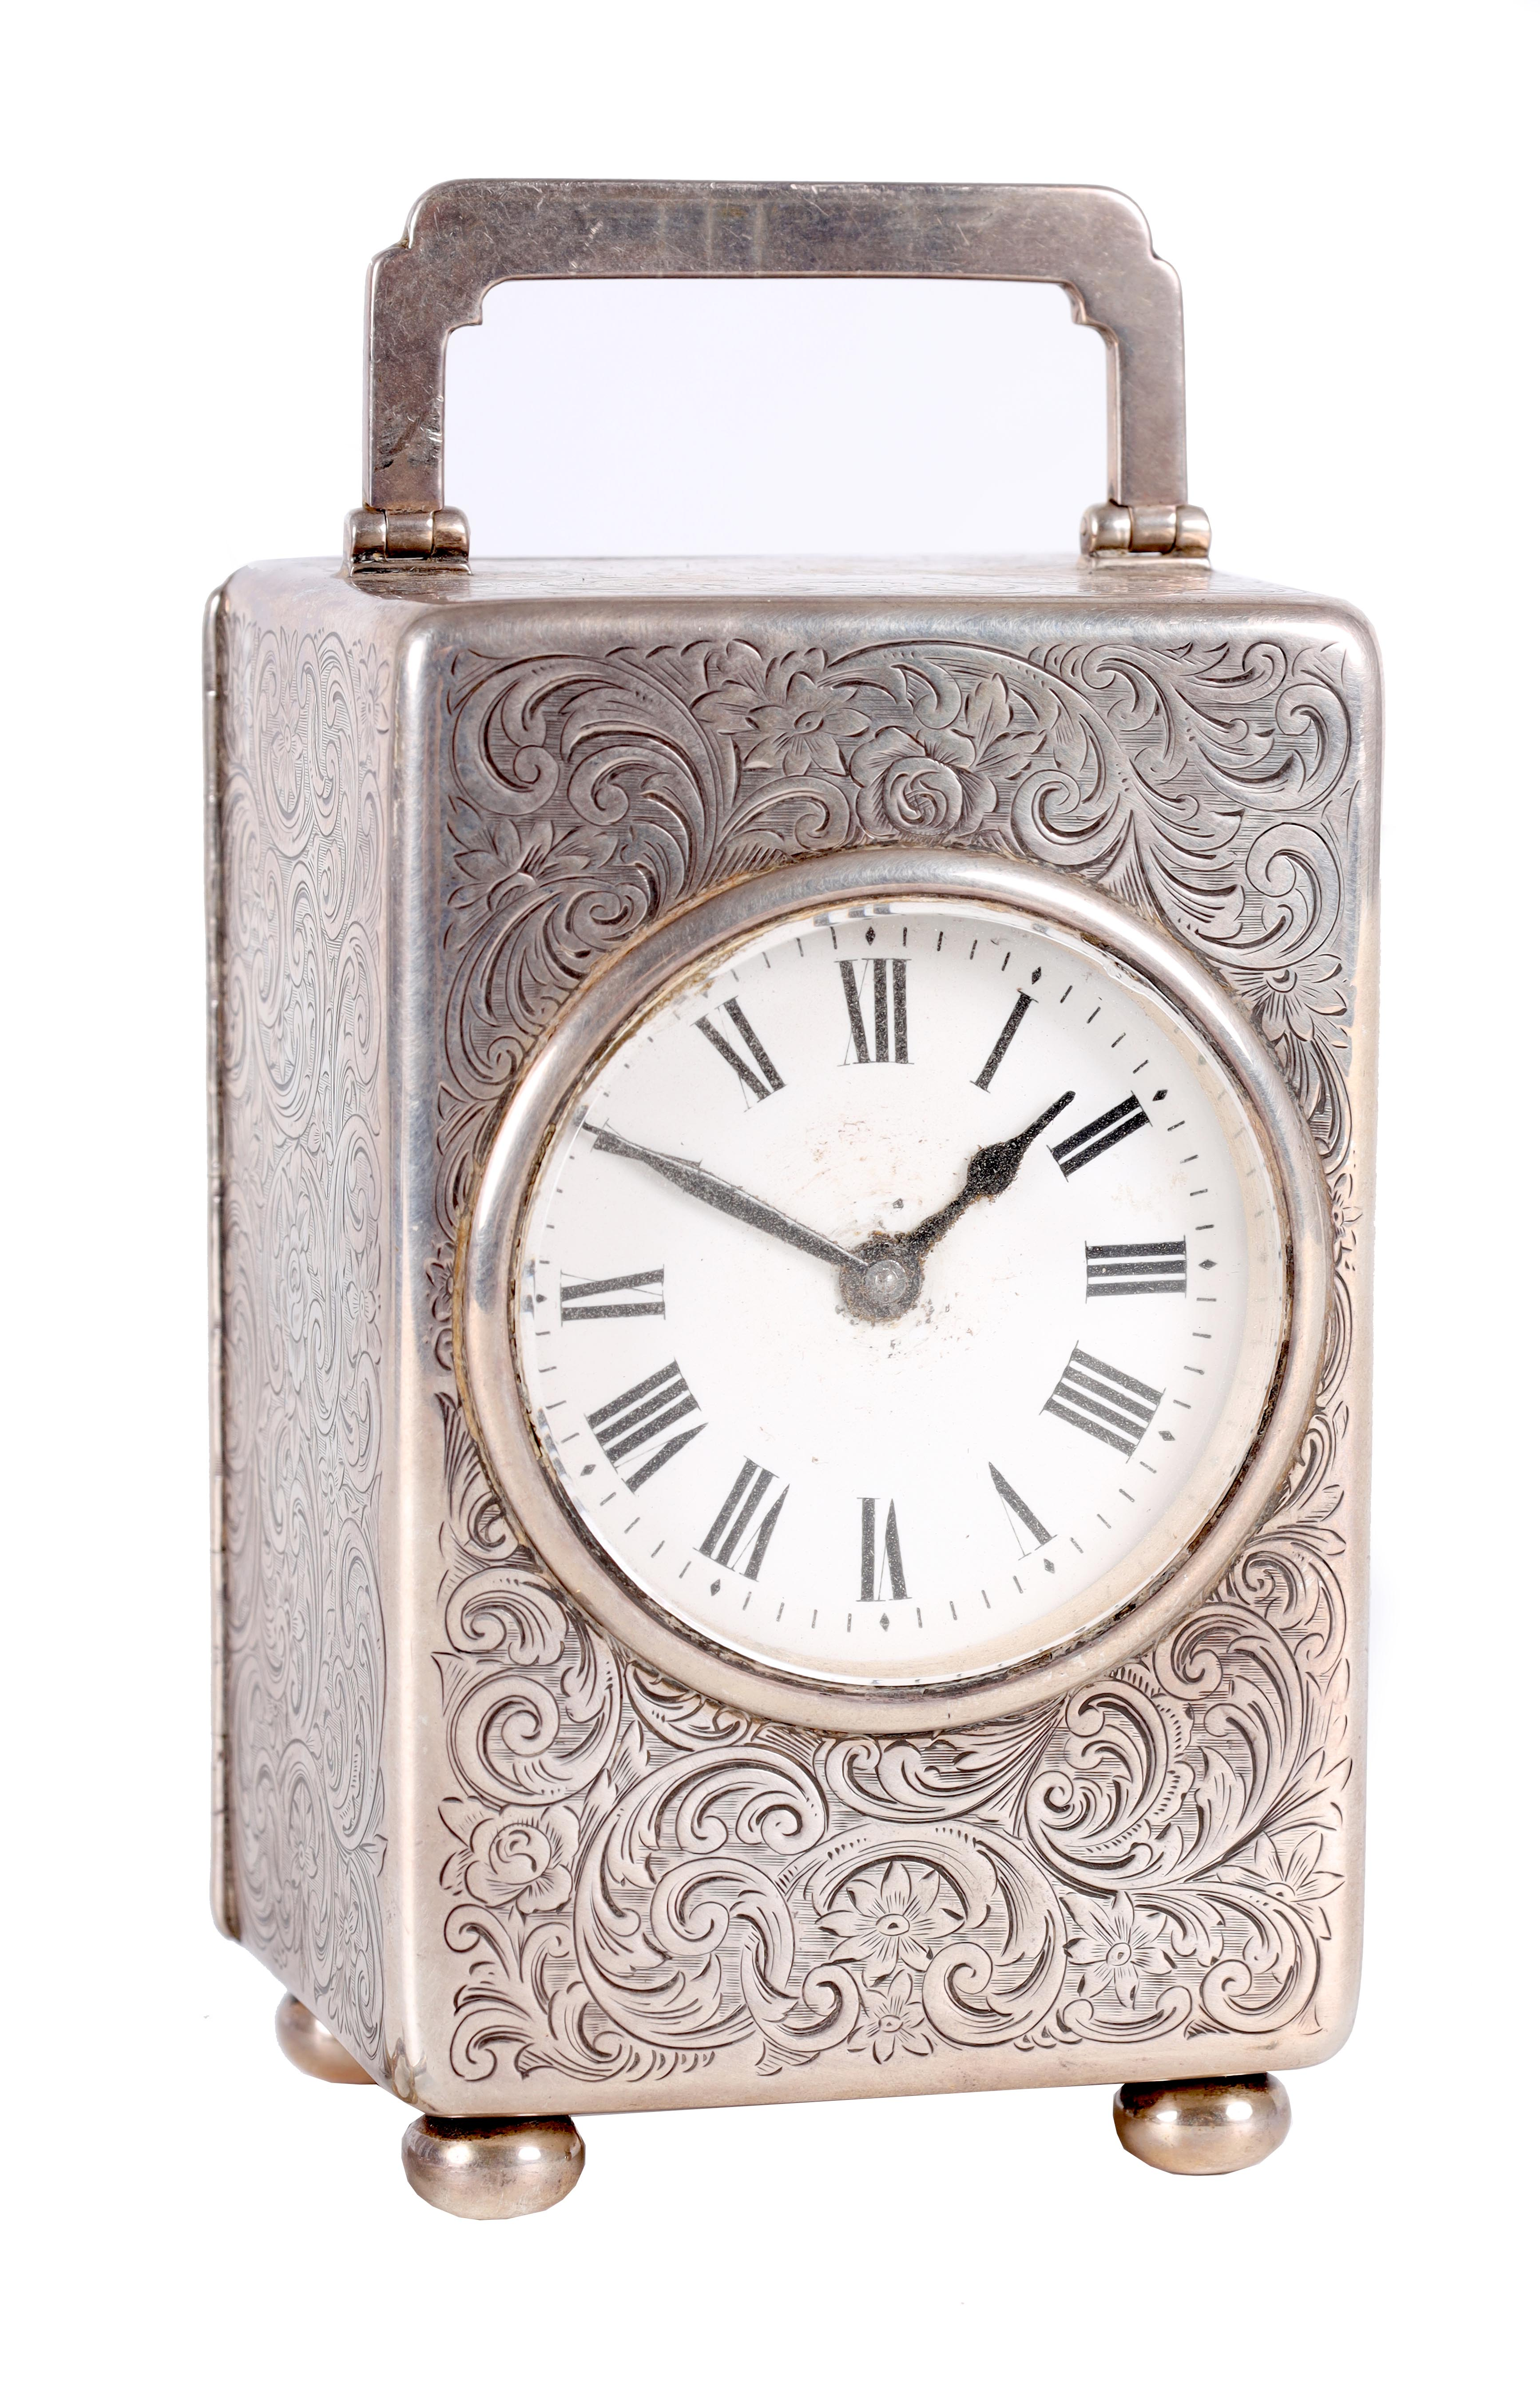 A LARGE EARLY 20TH CENTURY SILVER CASED CARRIAGE CLOCK the case covered with scrolling foliated